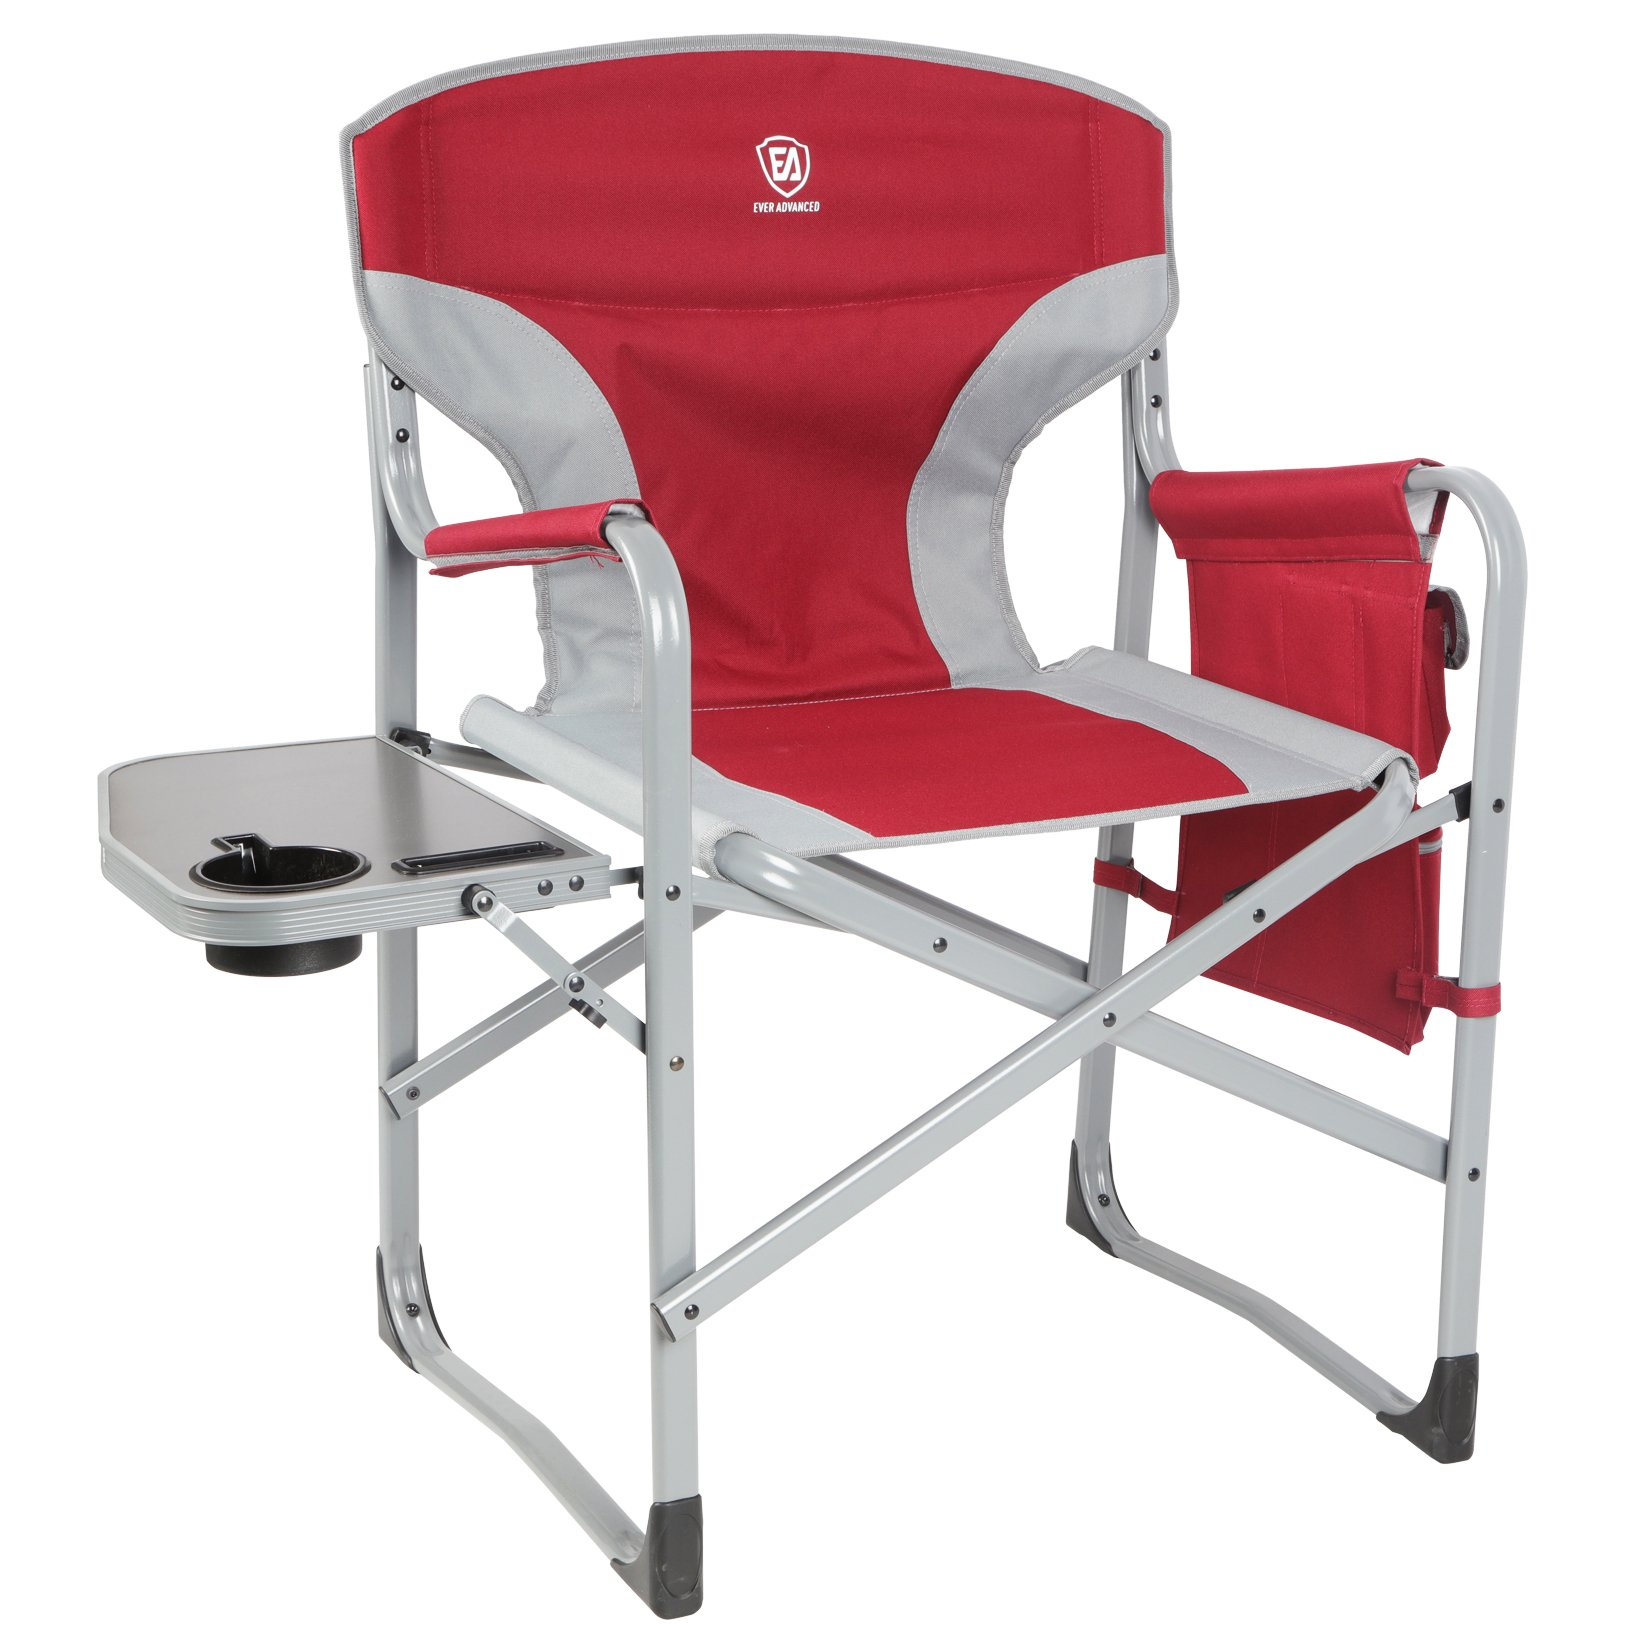 EVER ADVANCED Full Back Aluminum Folding Directors Chair with Side Table and Storage Pouch Heavy Duty 300LBS